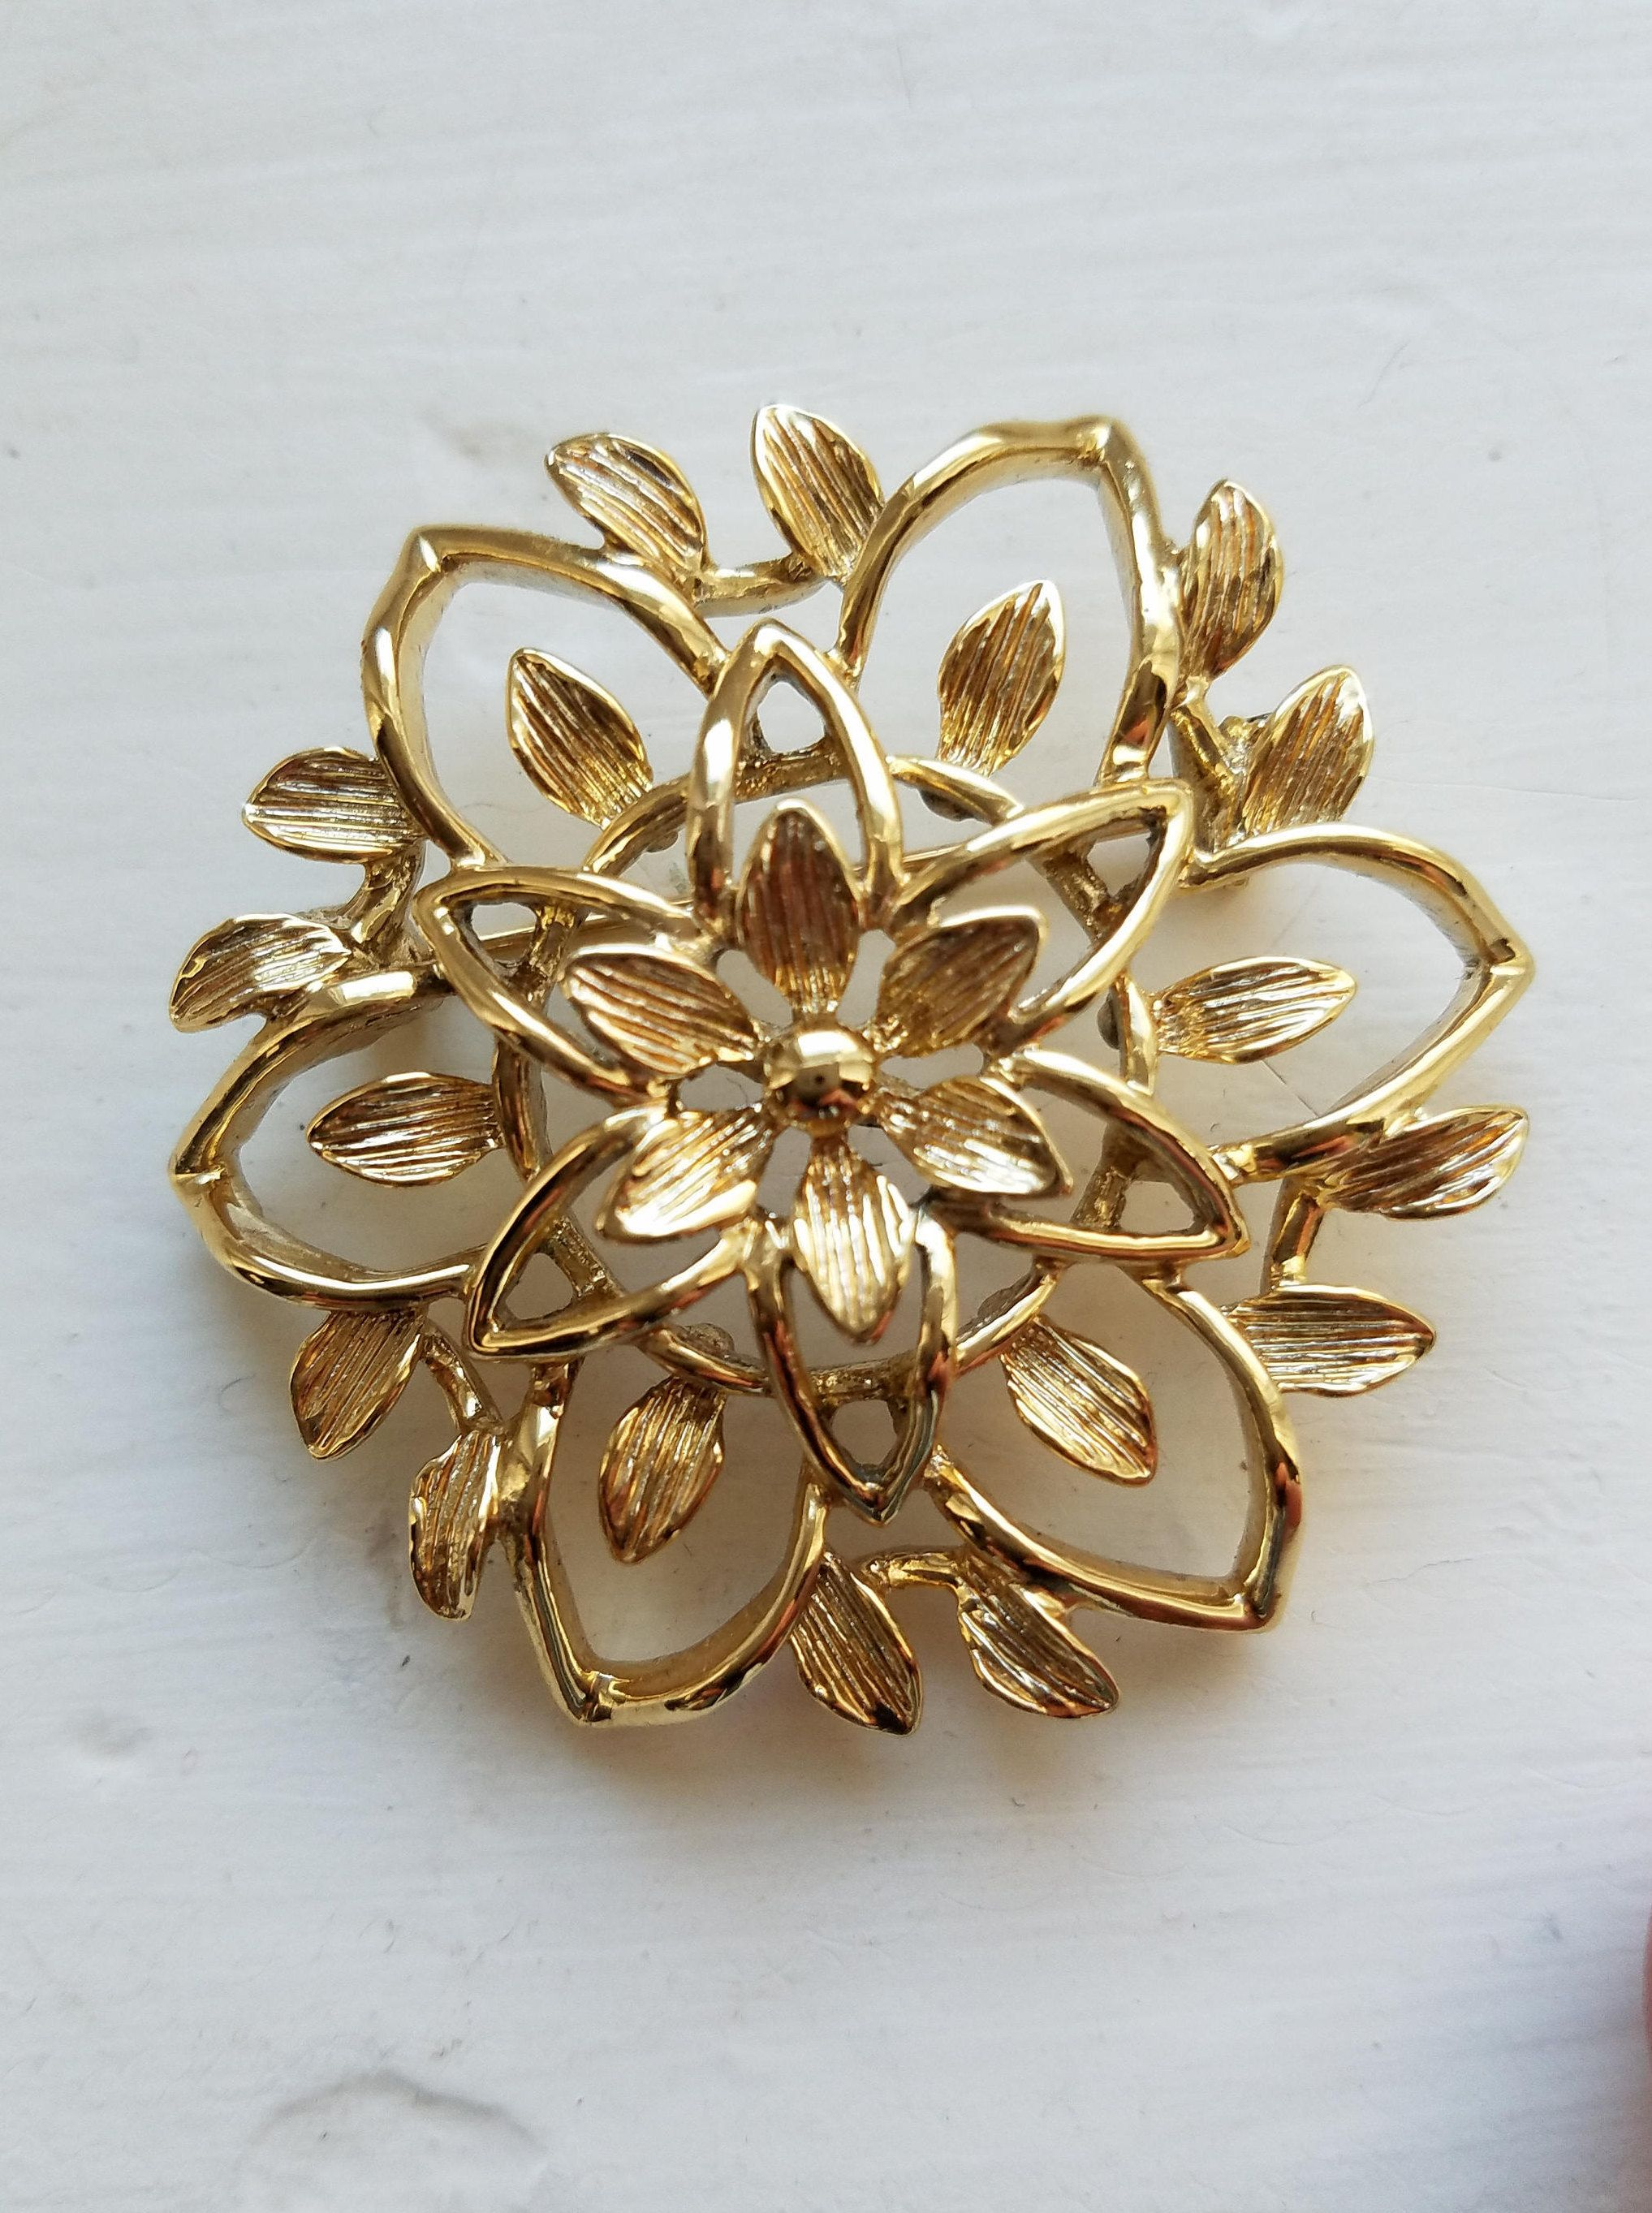 Vintage sarah coventry petalure gold star brooch with brushed gold